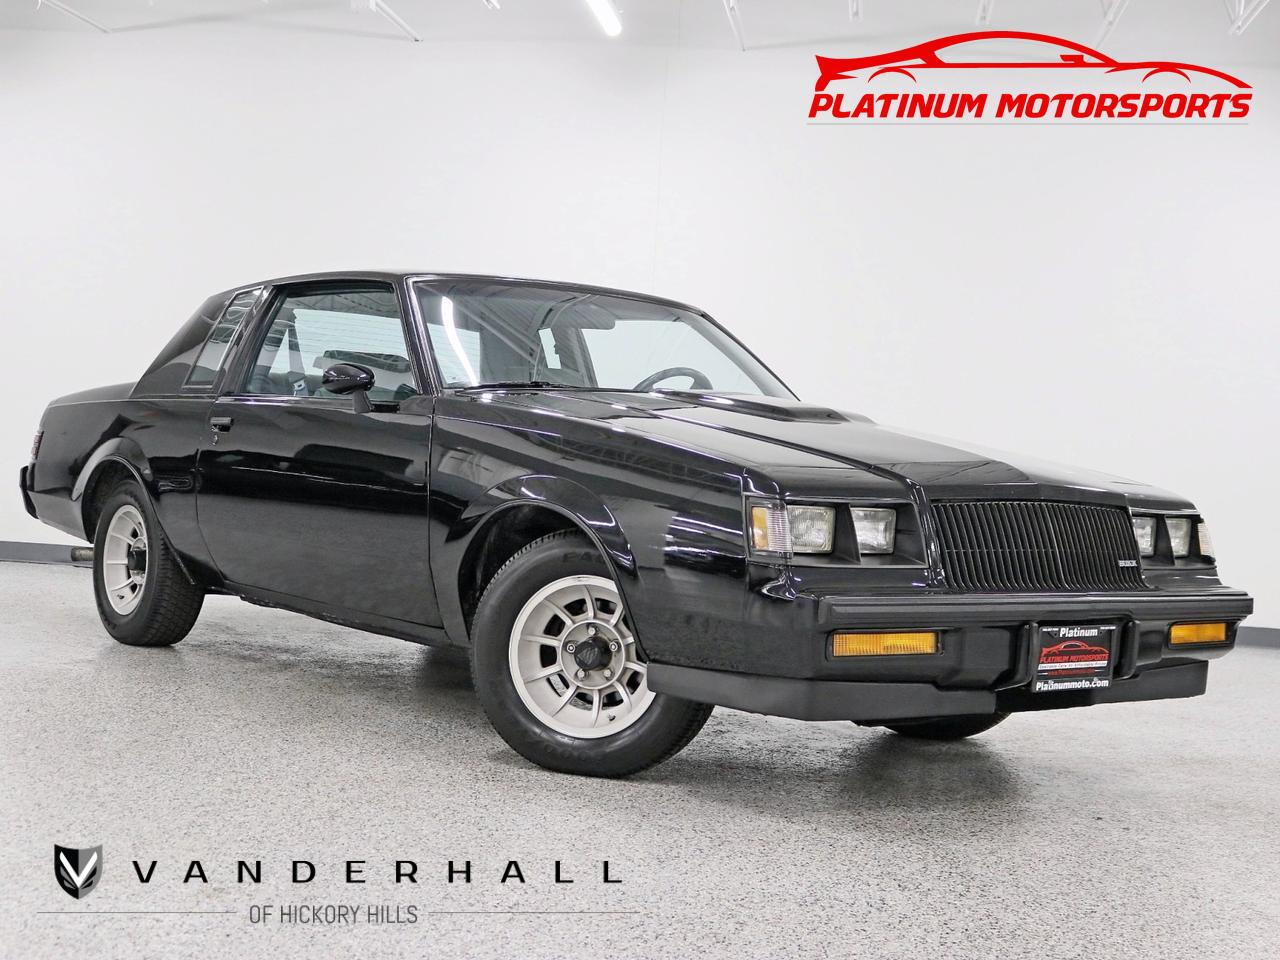 1987 Buick Regal Turbo T Rare Find 1 Of 1547 WE4 Hardtop Digital Dash Eagle GT II Tires Hickory Hills IL